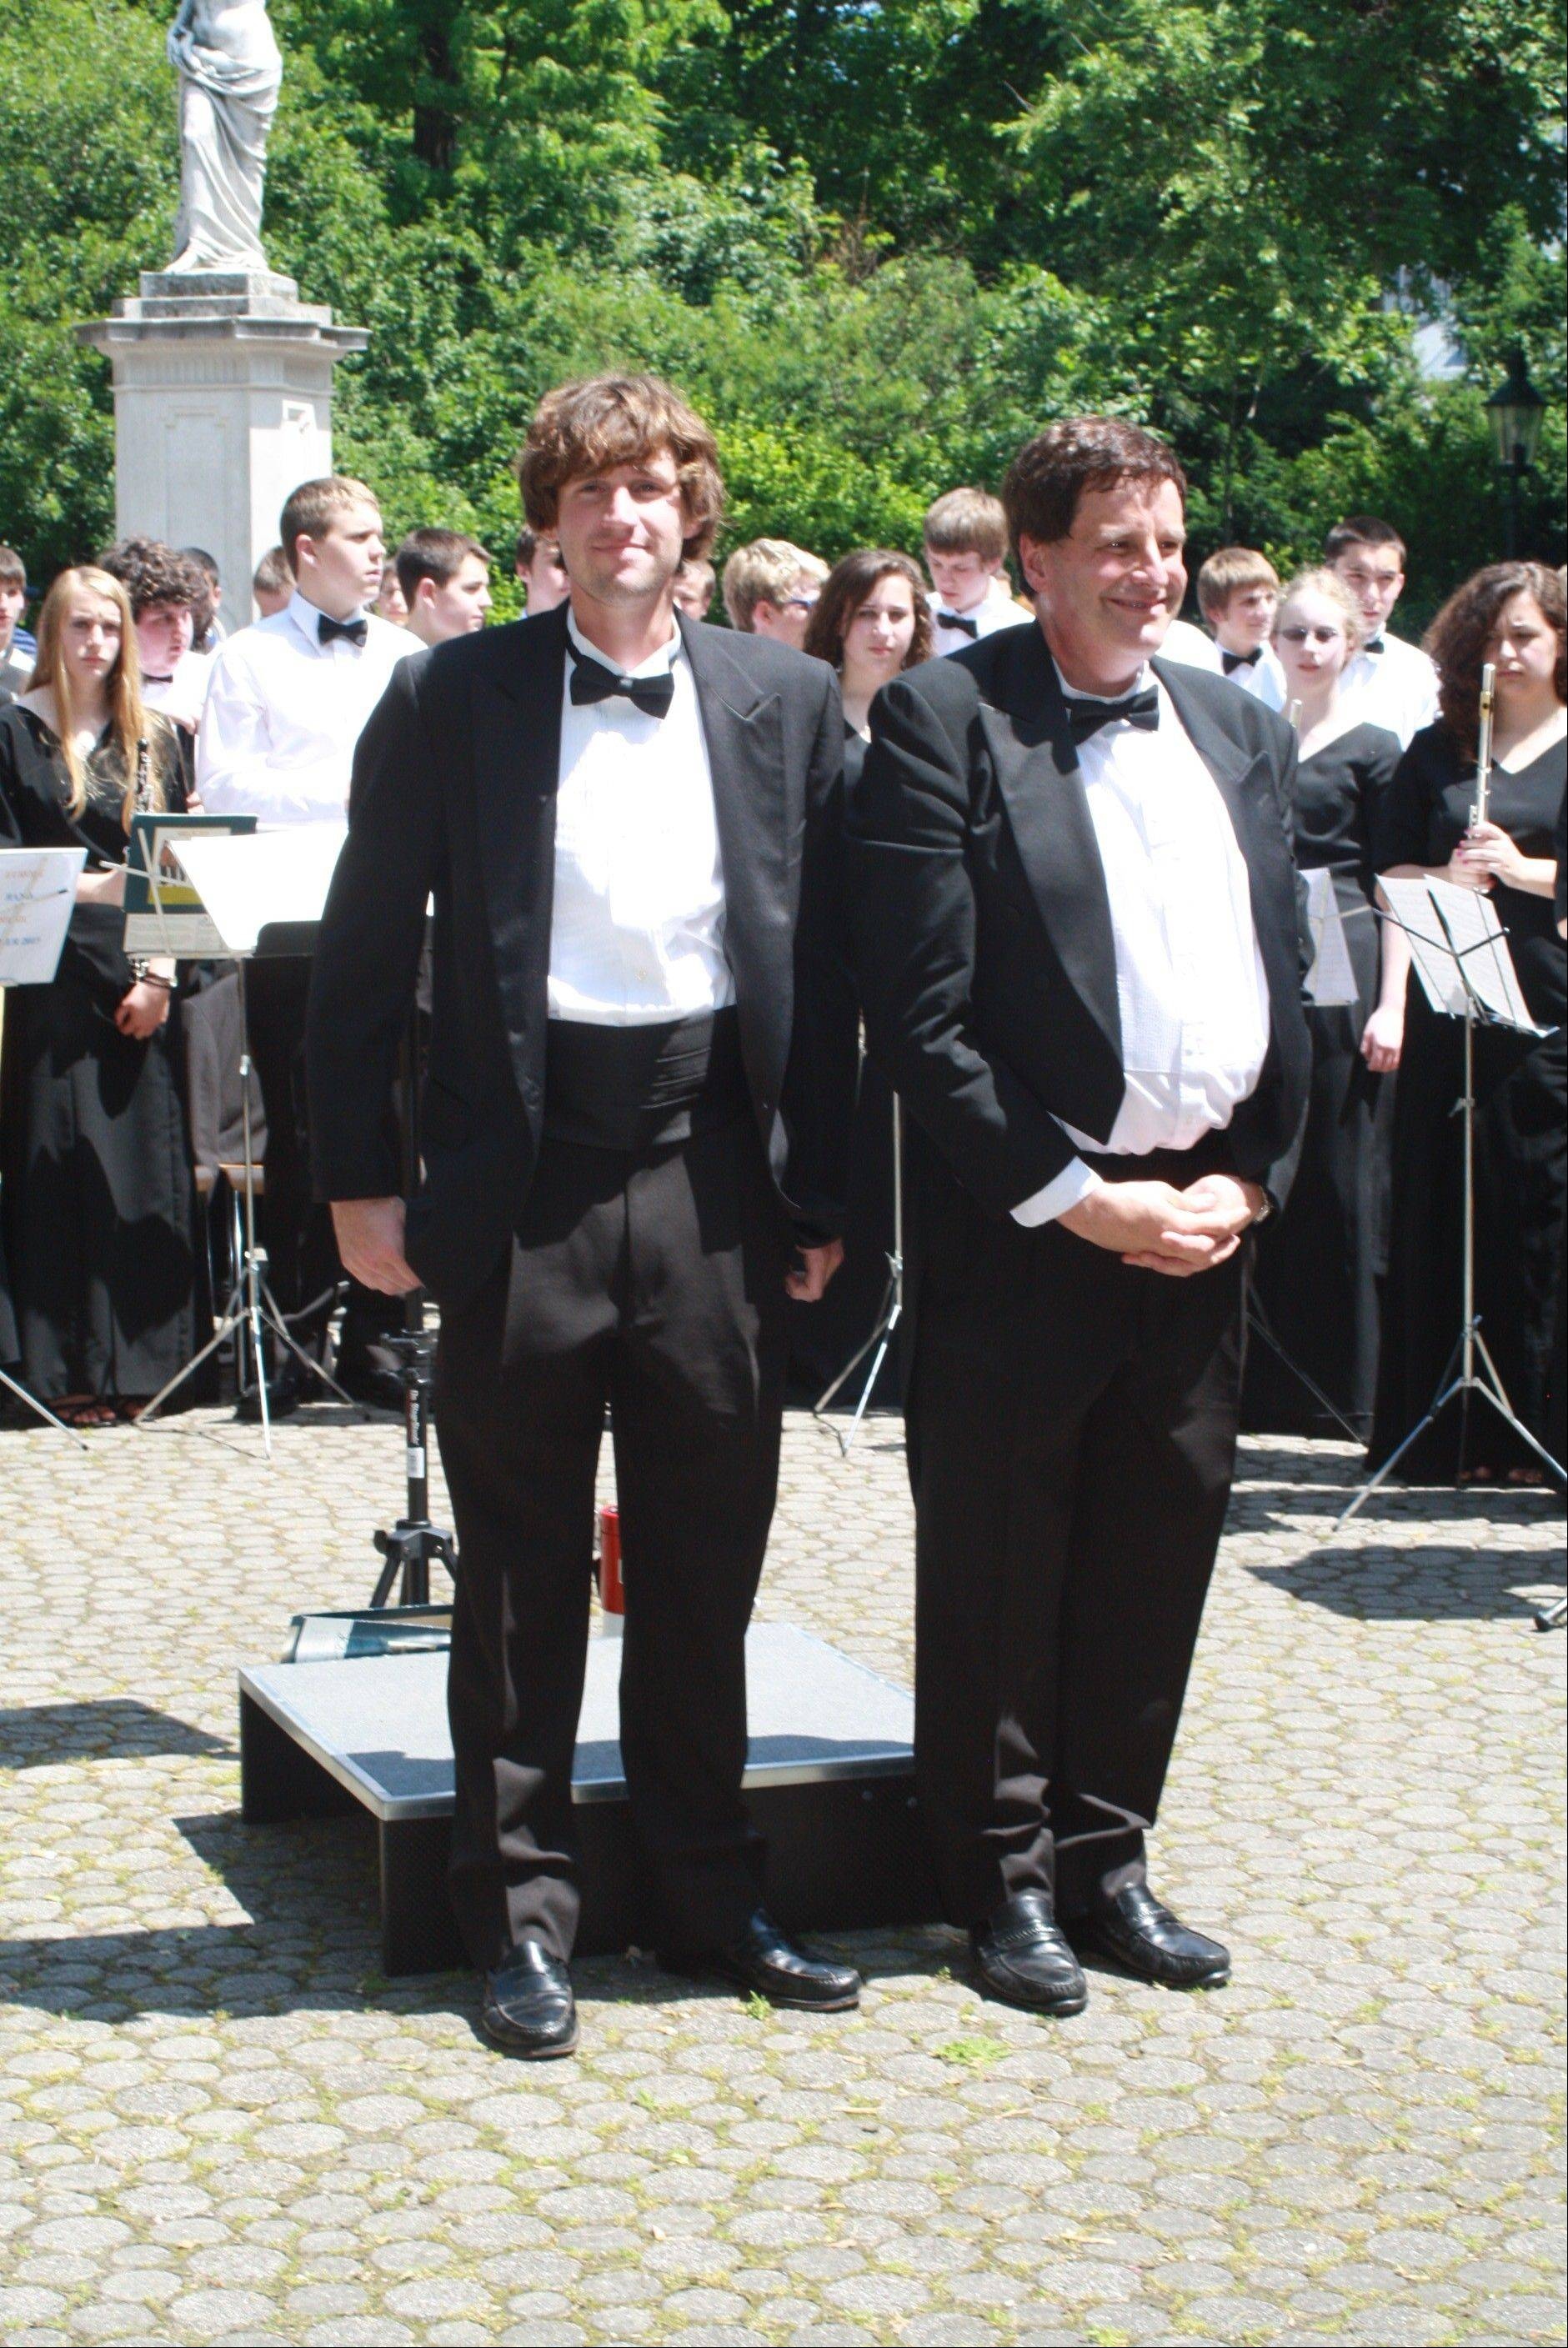 Band Director Ed Jacobi and his son, Andrew Jacobi, who is the director of bands at Richwoods High School in Peoria and who also conducted the Buffalo Grove Band in Europe this summer pose after the concert performance in Stadt Park in Vienna this past June at the memorial to Johann Strauss II.